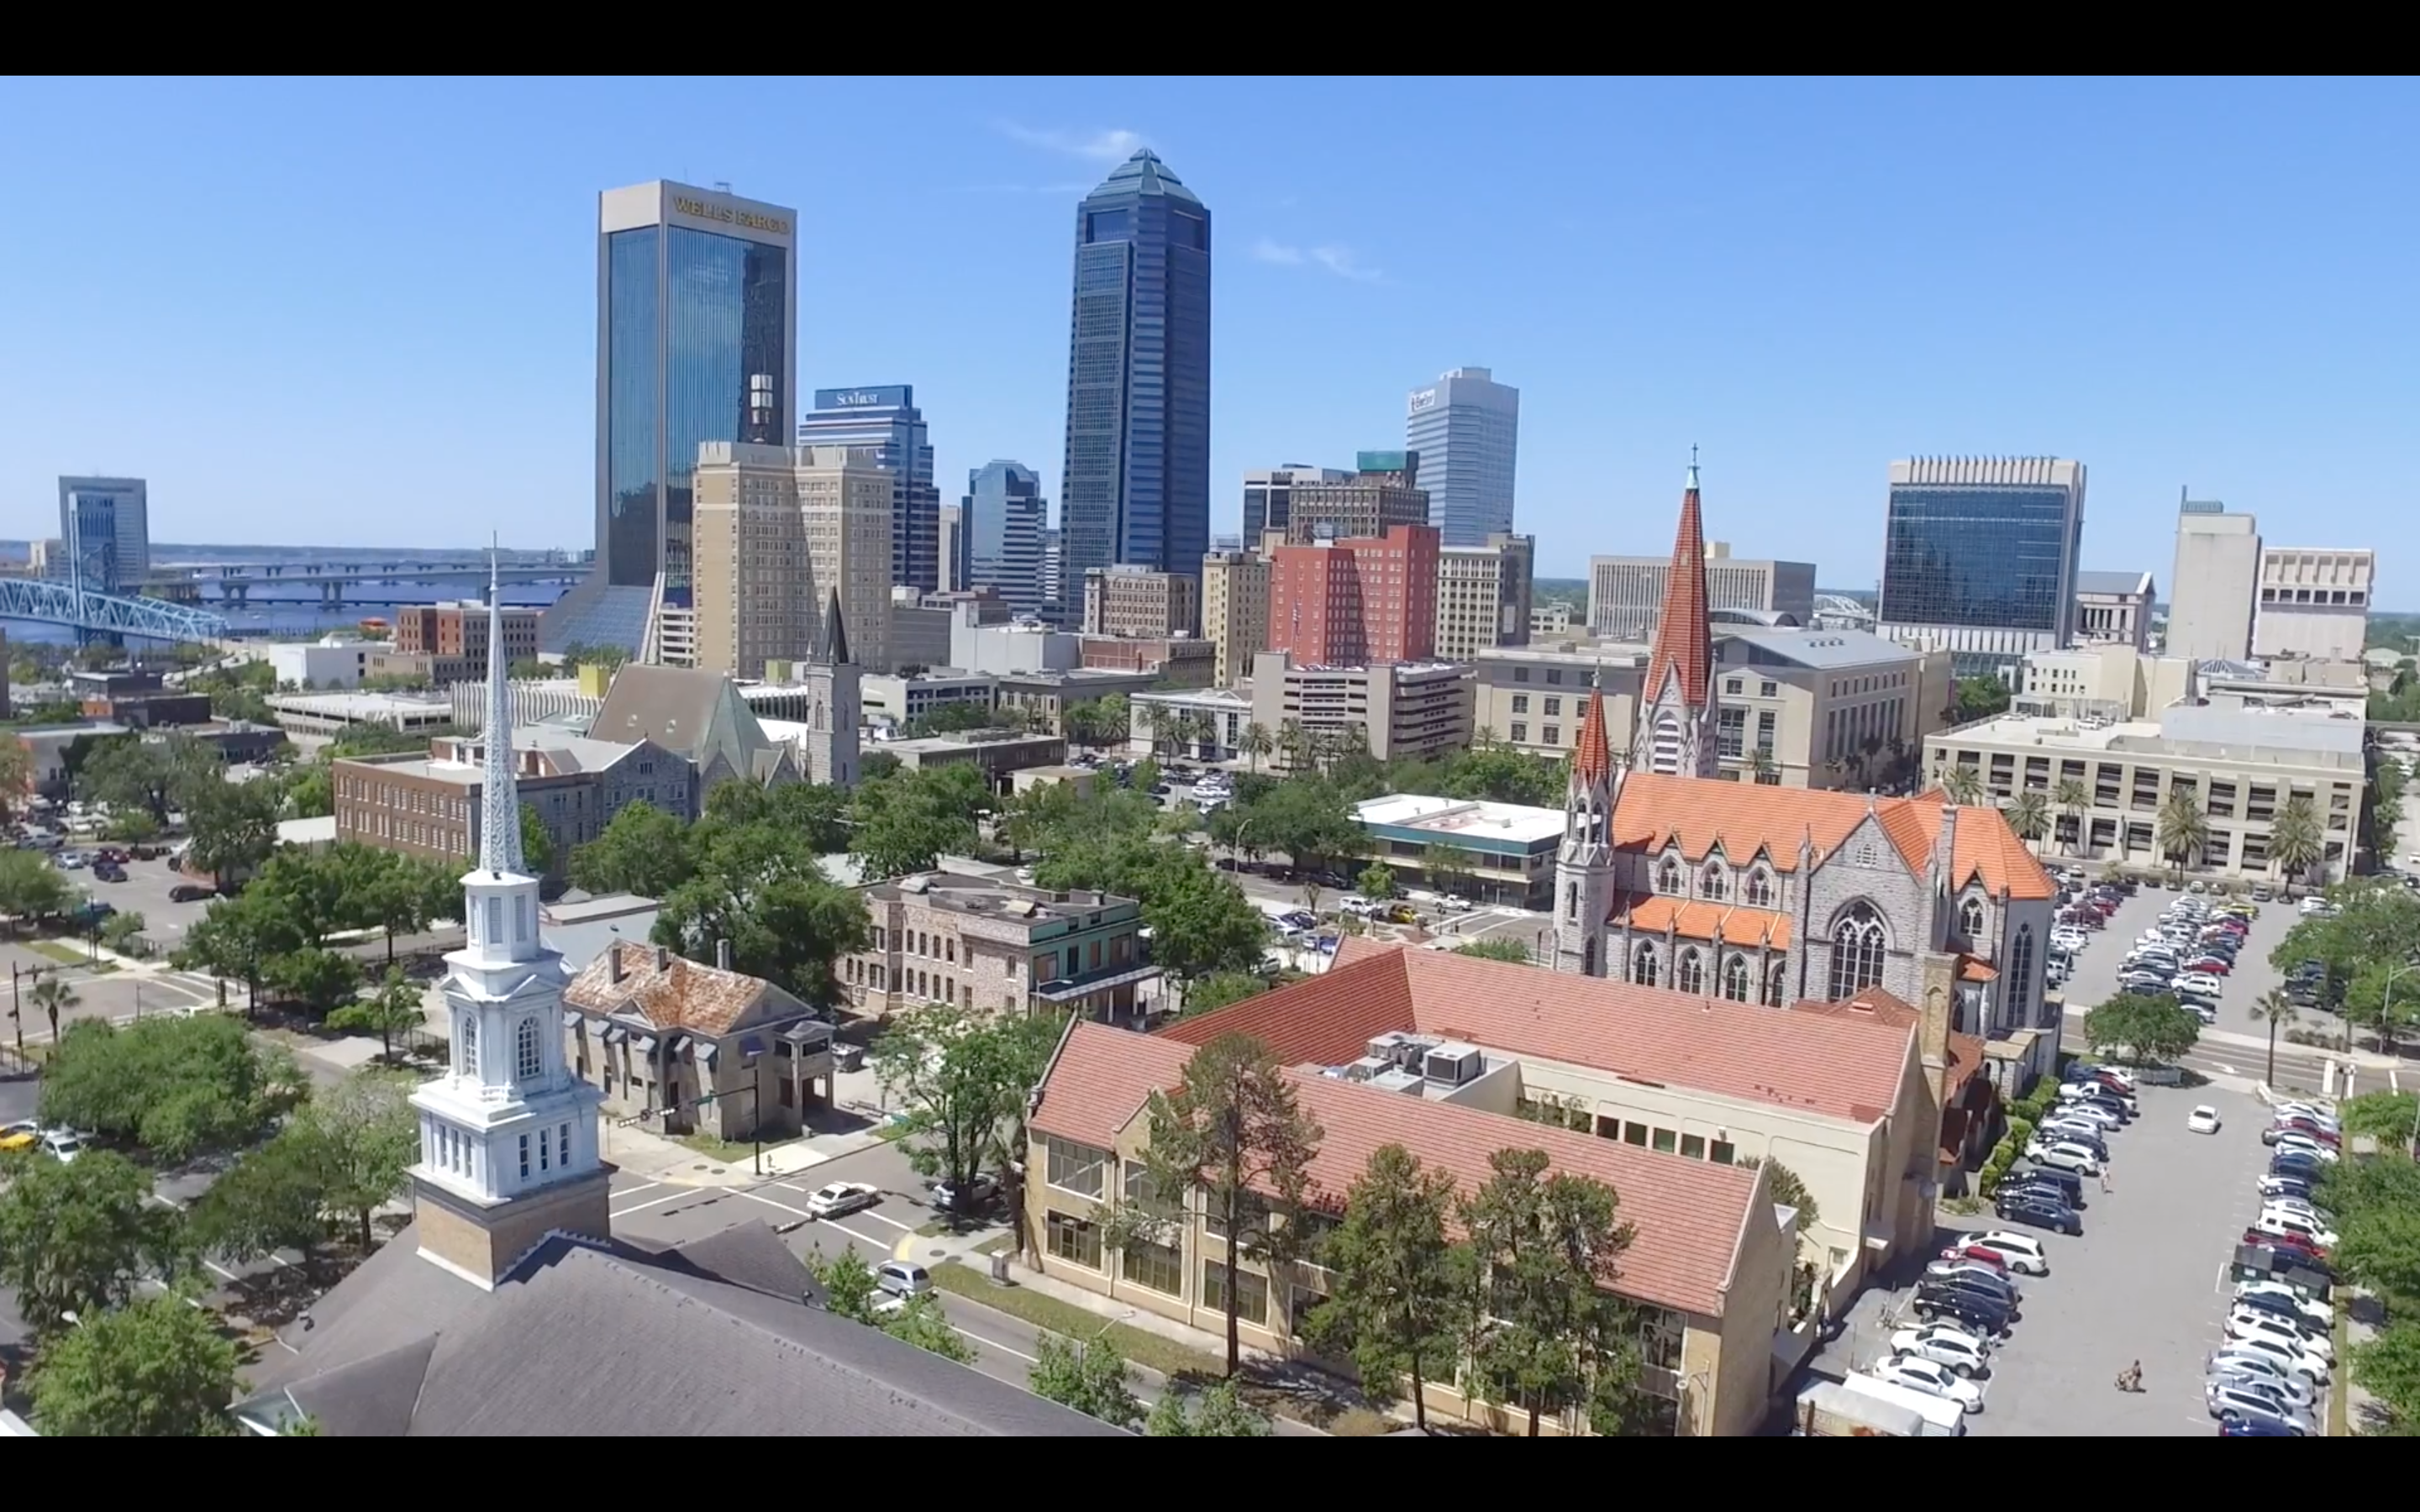 Friday's Editorial: Grand plans are emerging for Cathedral District – Opinion – The Florida Times-Union – jacksonville.com